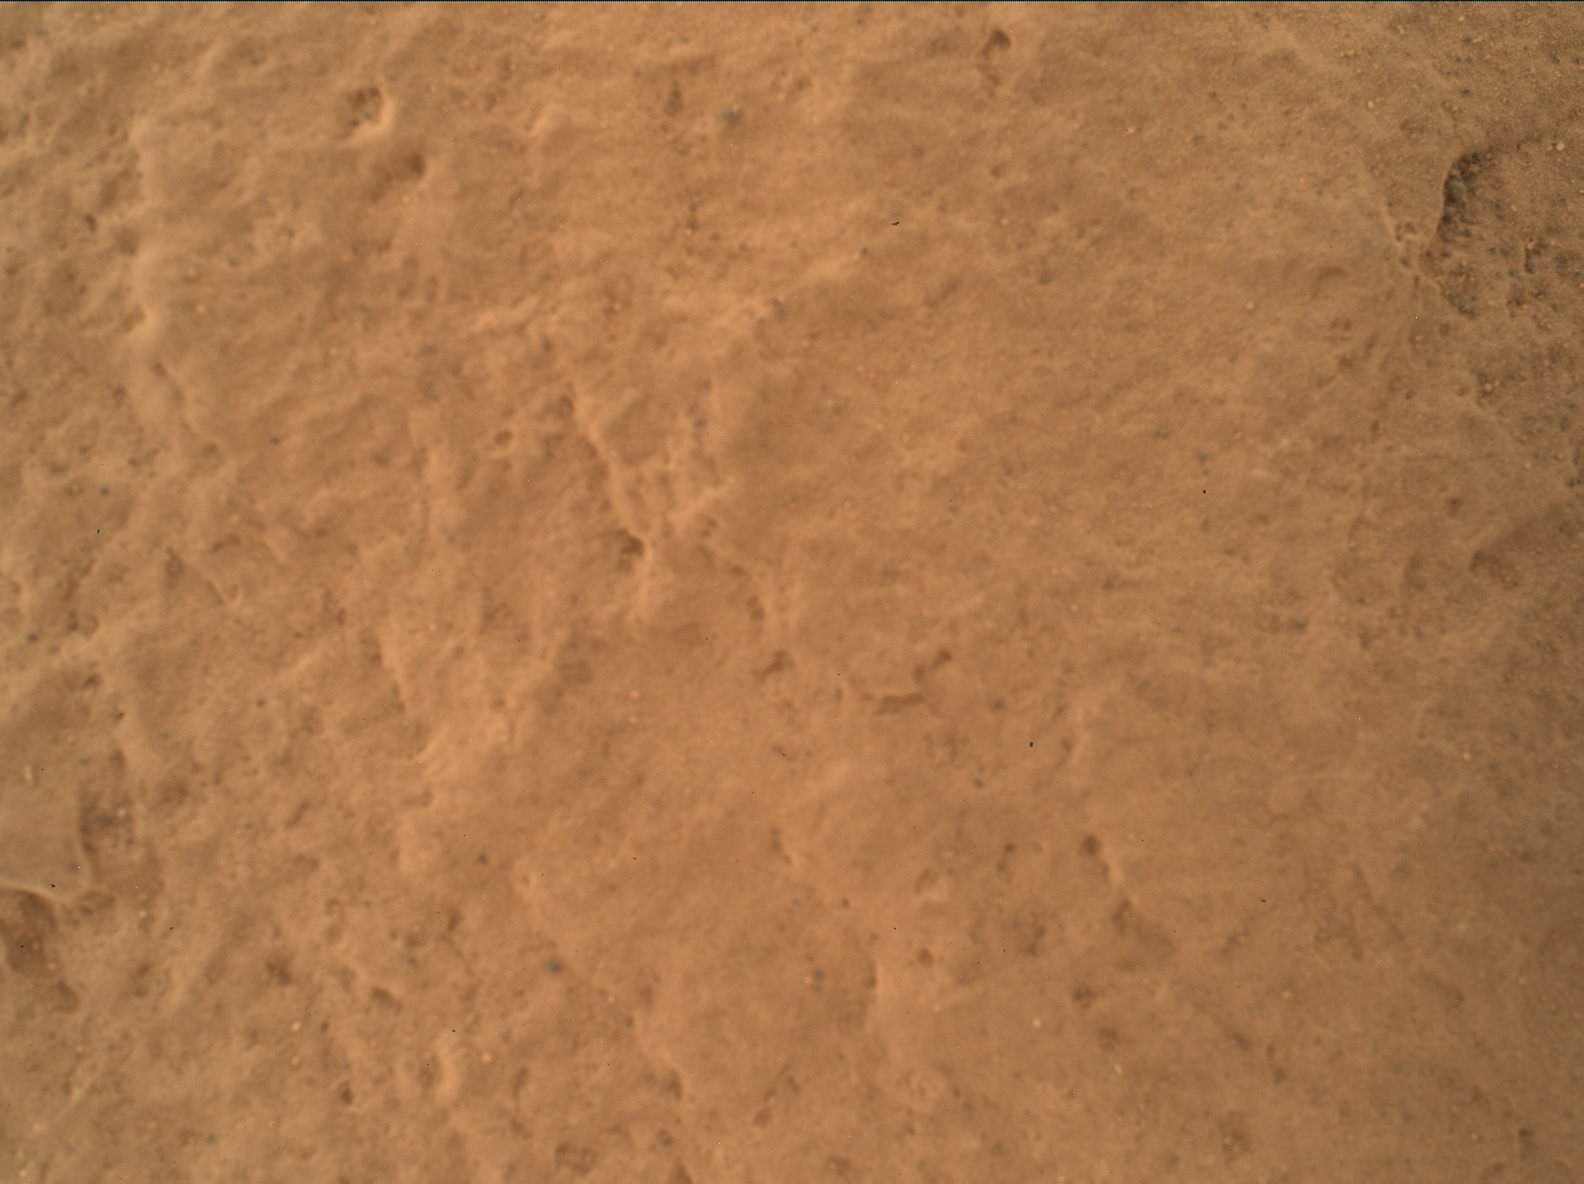 Nasa's Mars rover Curiosity acquired this image using its Mars Hand Lens Imager (MAHLI) on Sol 1739